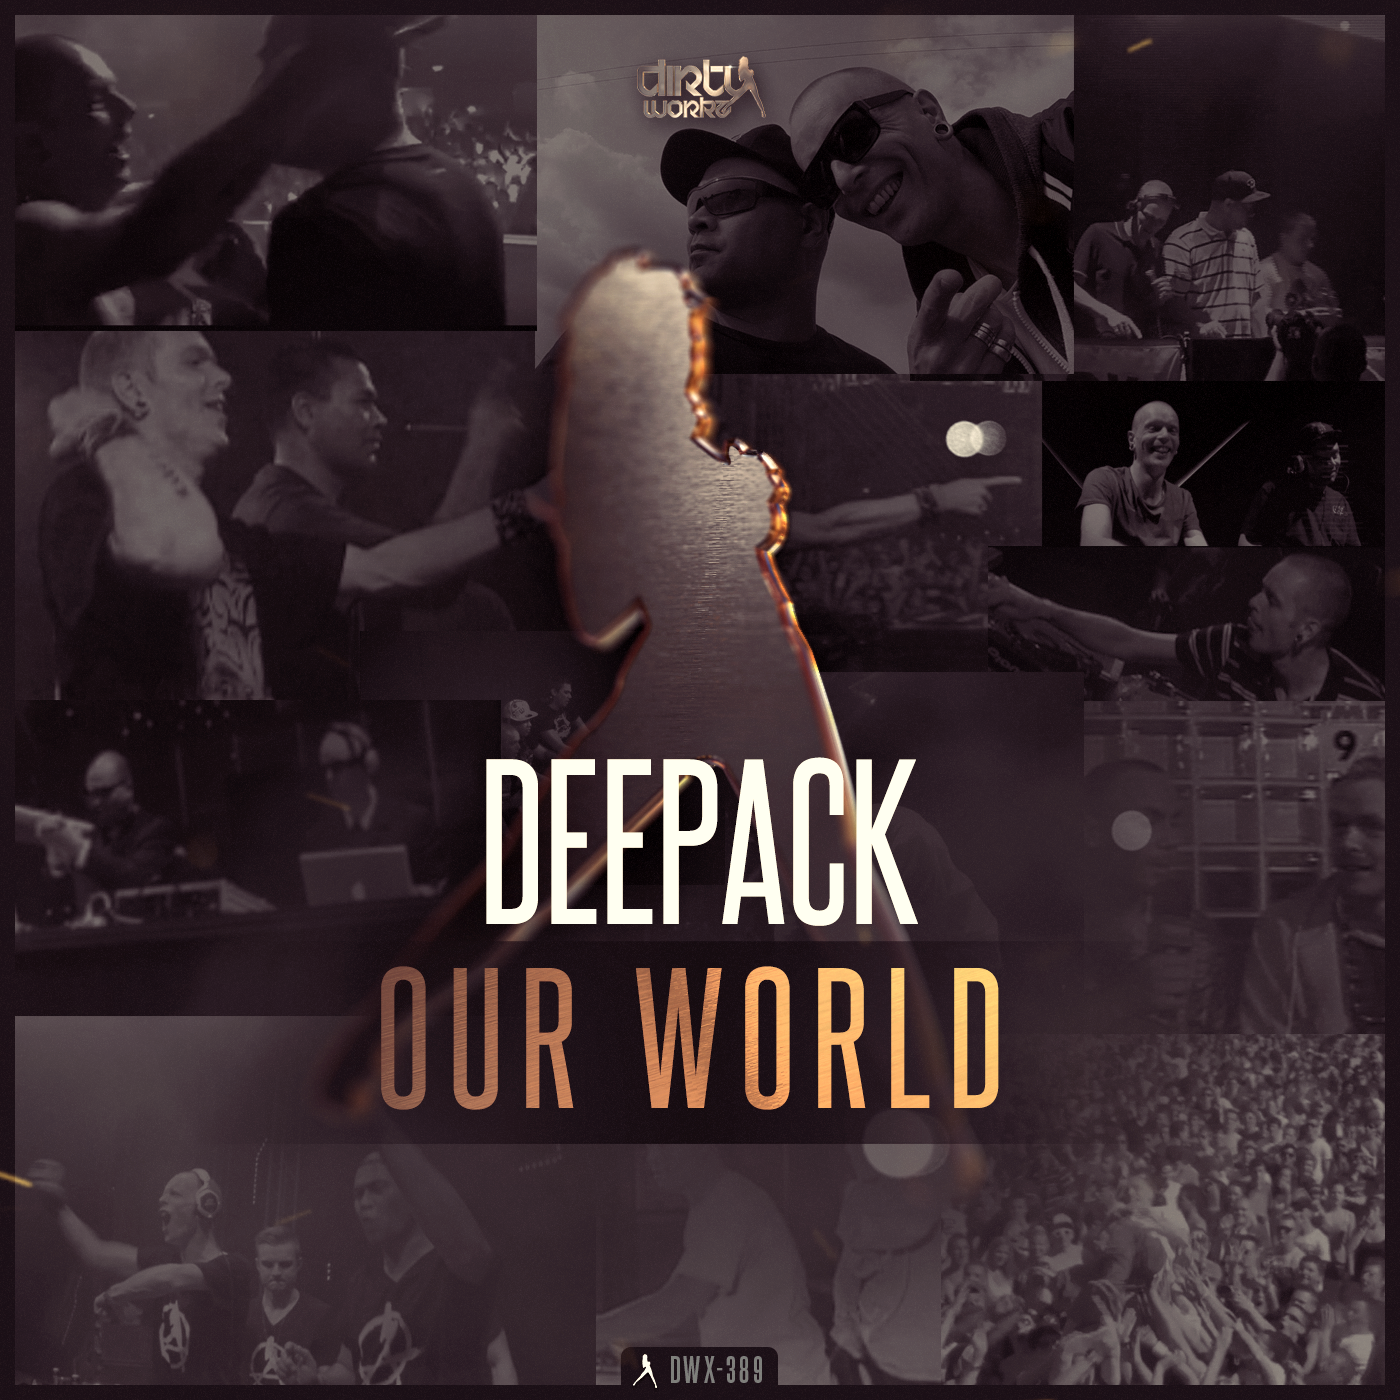 Deepack - Our World [DIRTY WORKZ] DWX389